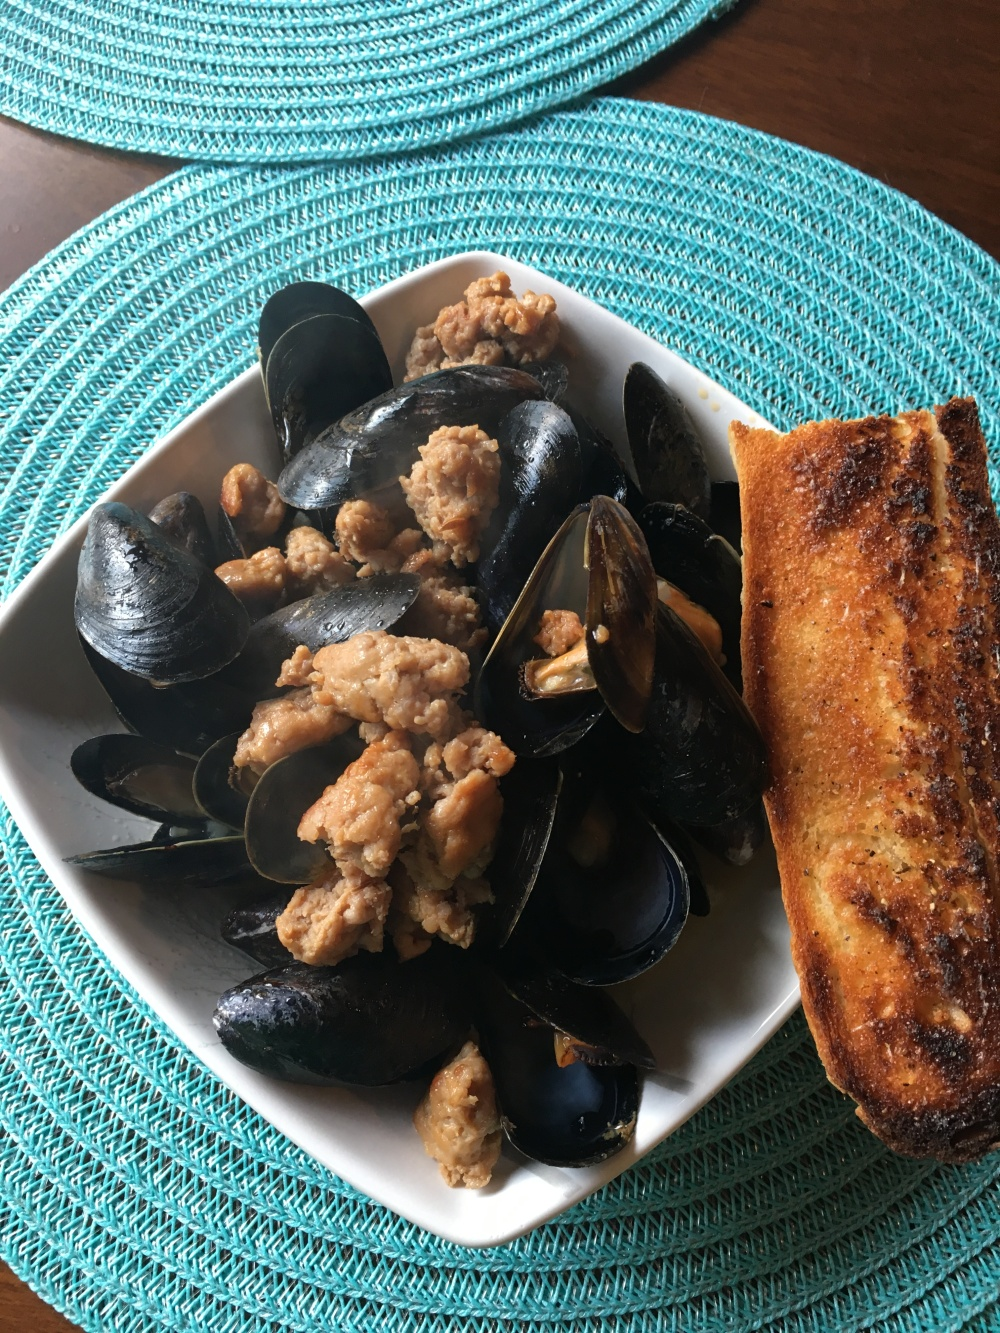 Wine, garlic, sausage mussels